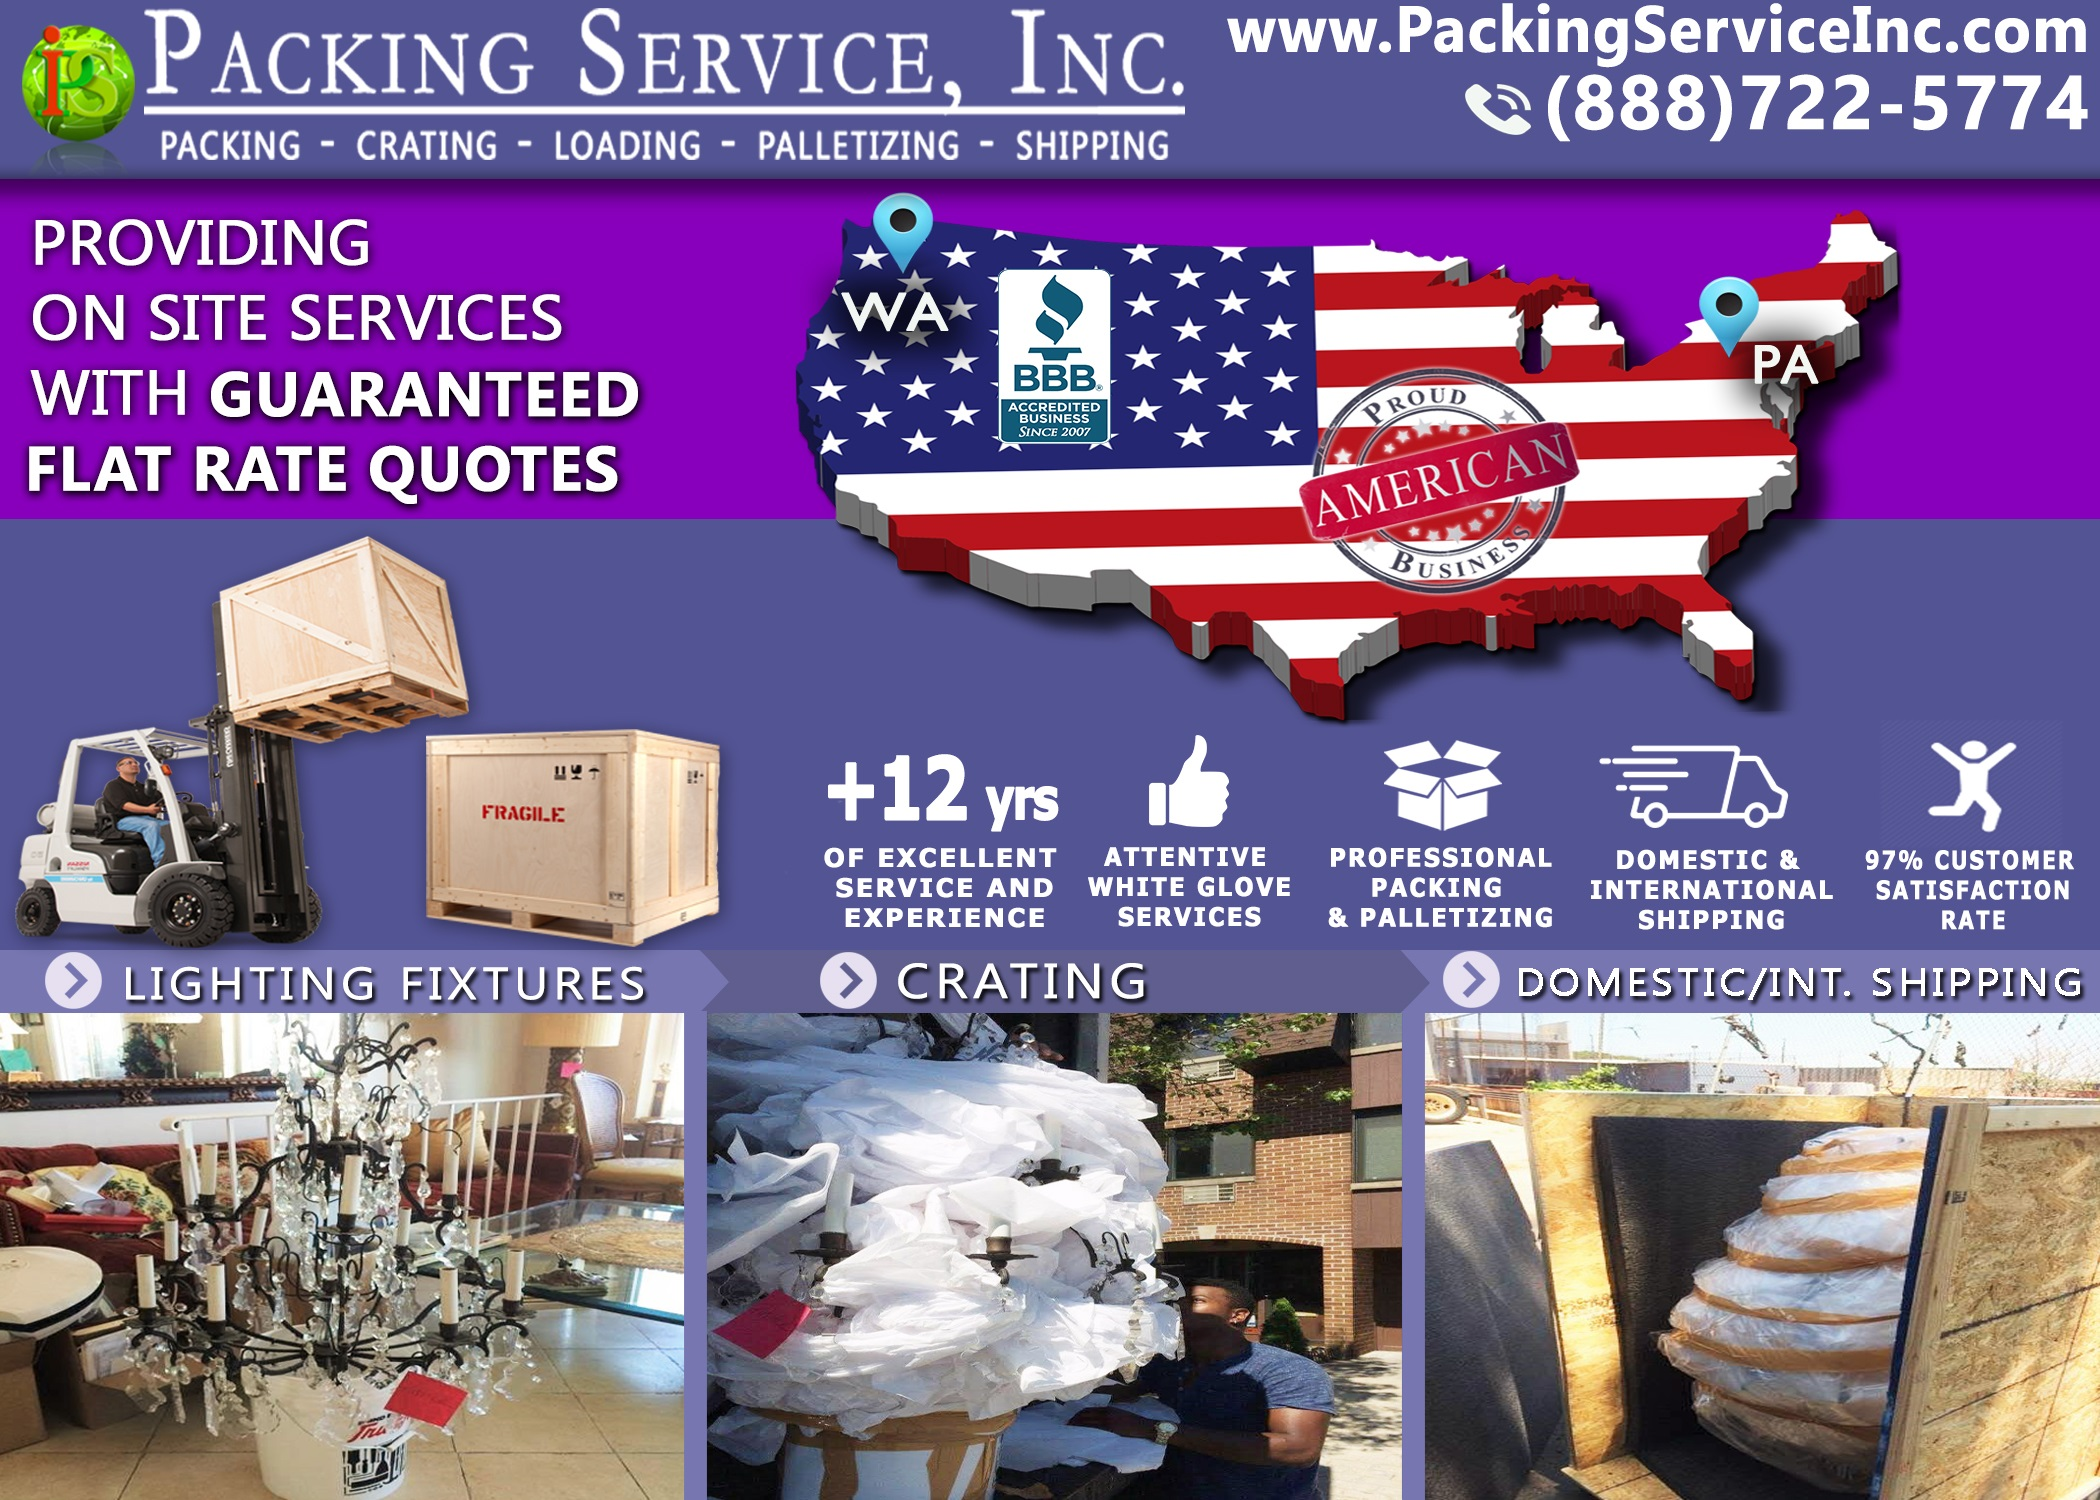 Professional Custom Crating Team will pack and wrap your Chandelier or Fragile Item then build a custom wooden crate around it for Shipping